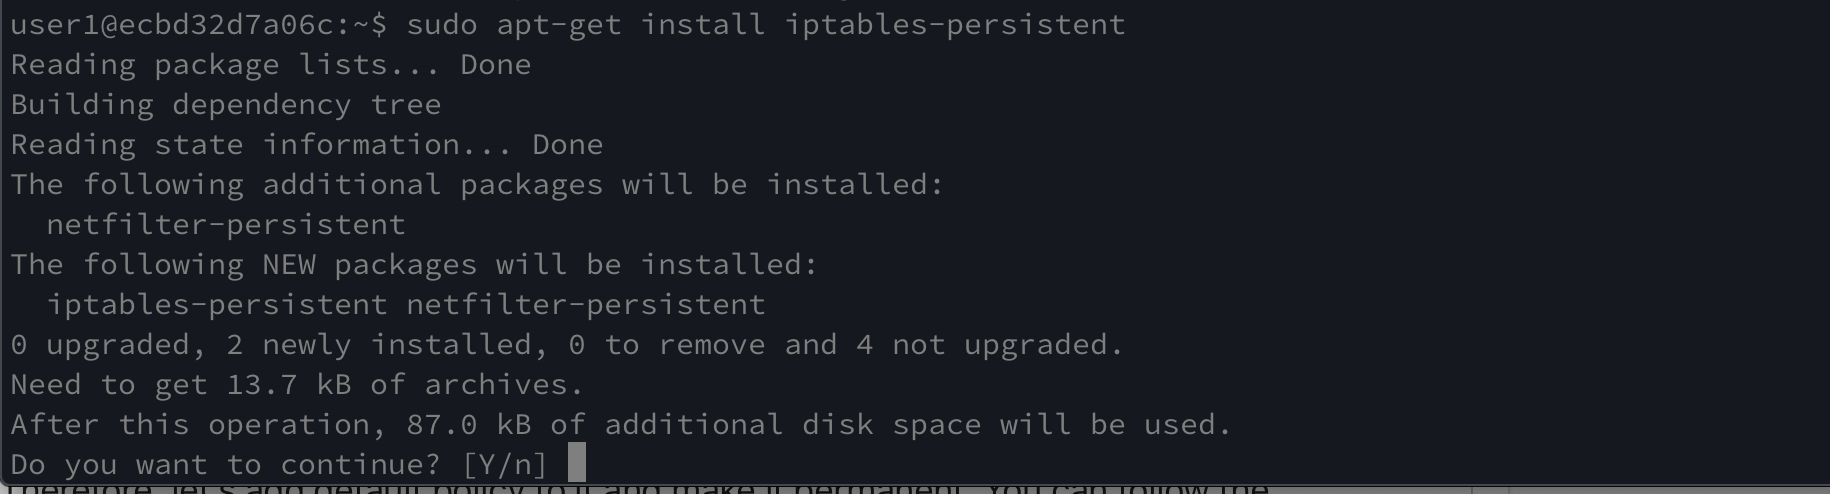 installing iptables-persistent linux